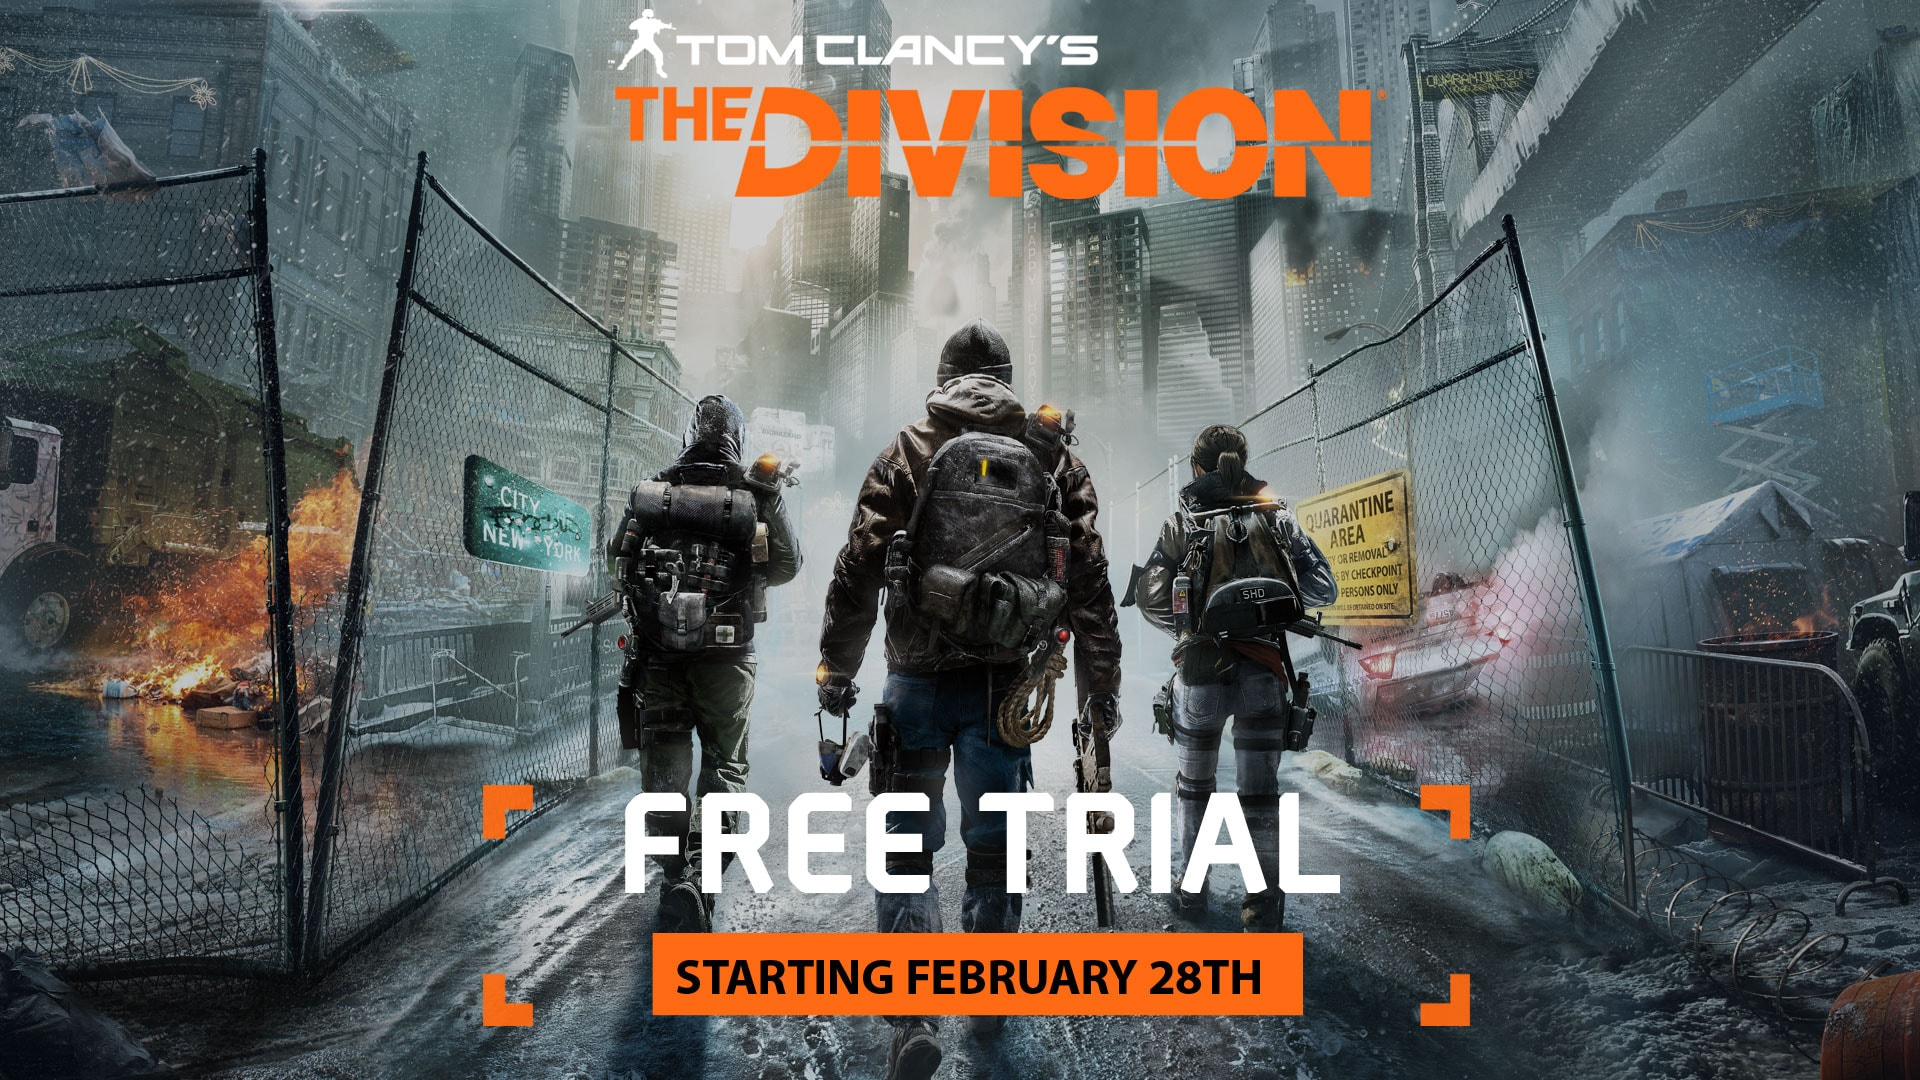 TCTD_FreeTrial_ALL_Feb28